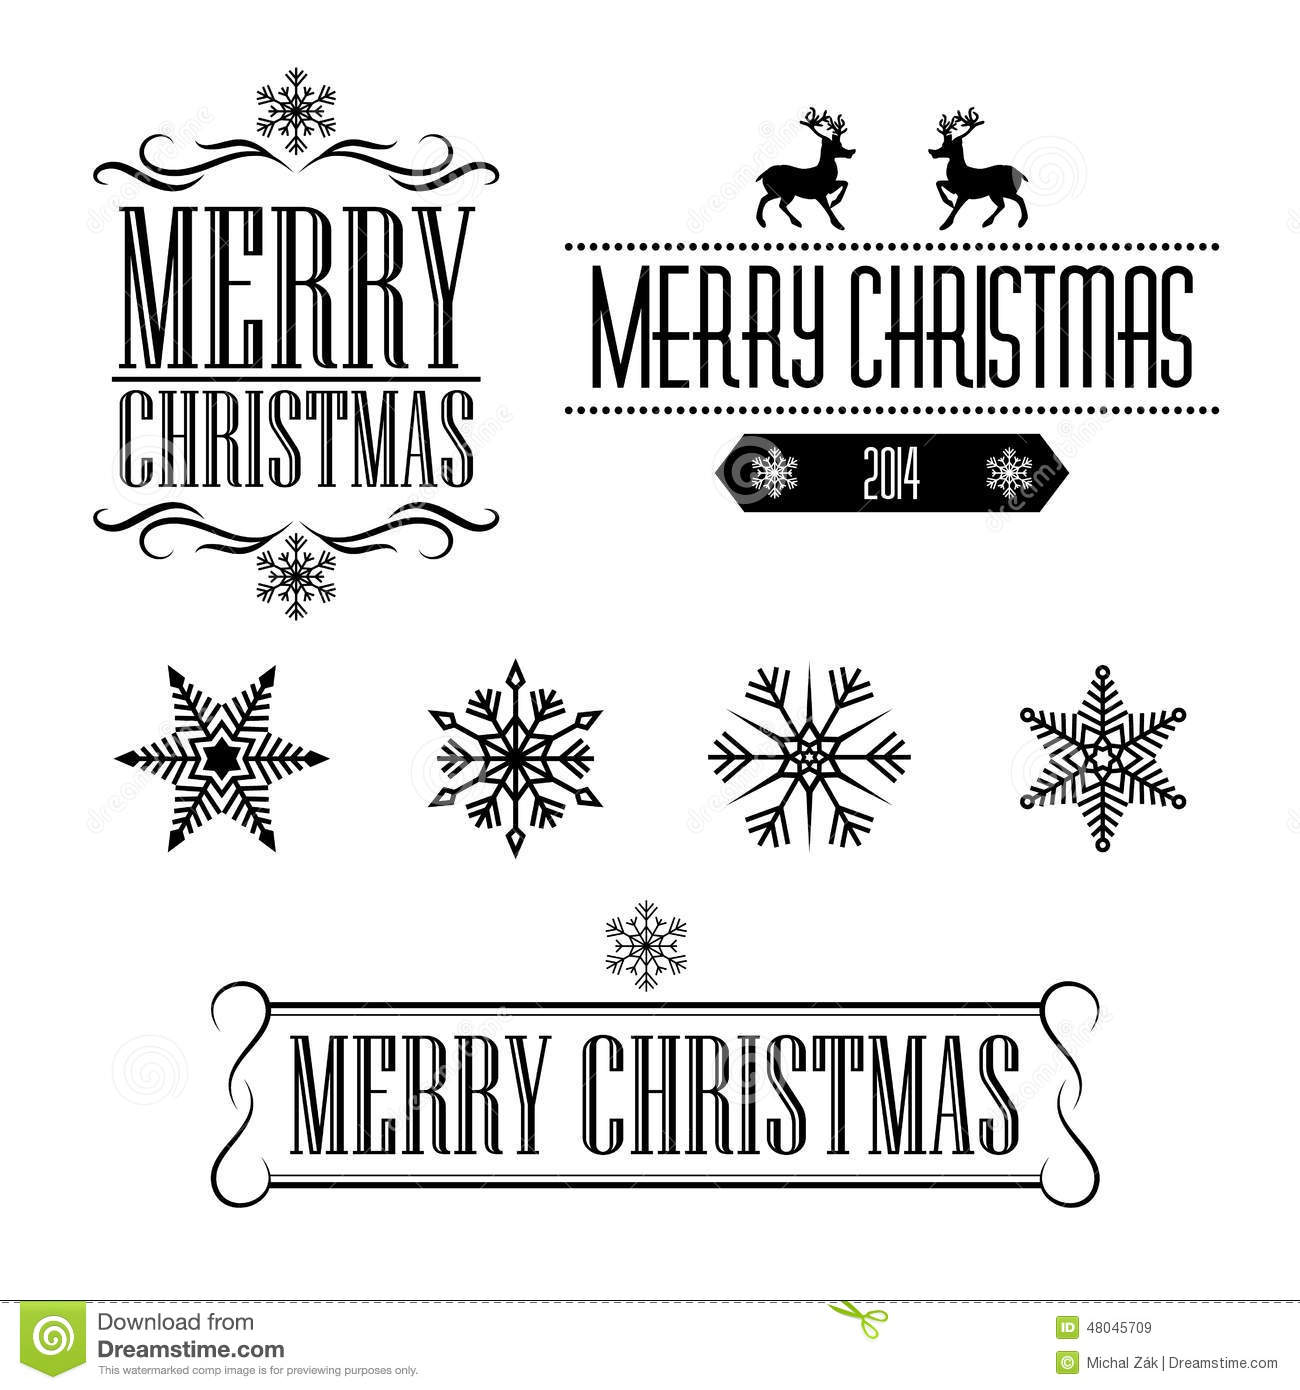 how to make a merry christmas sign